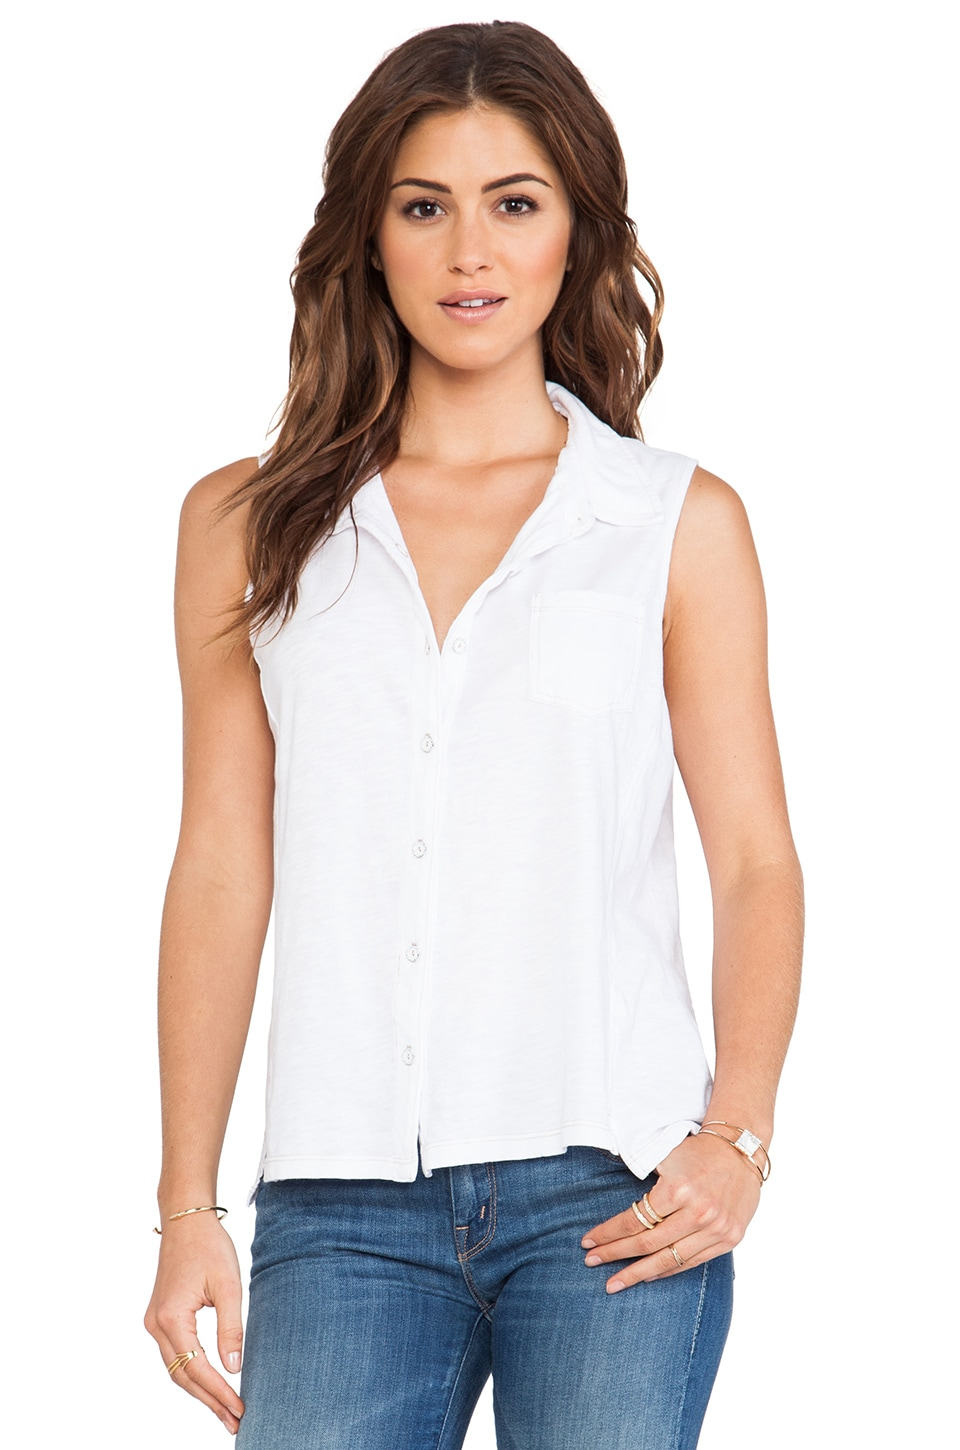 Splendid Indigo Dye Top in White Wash